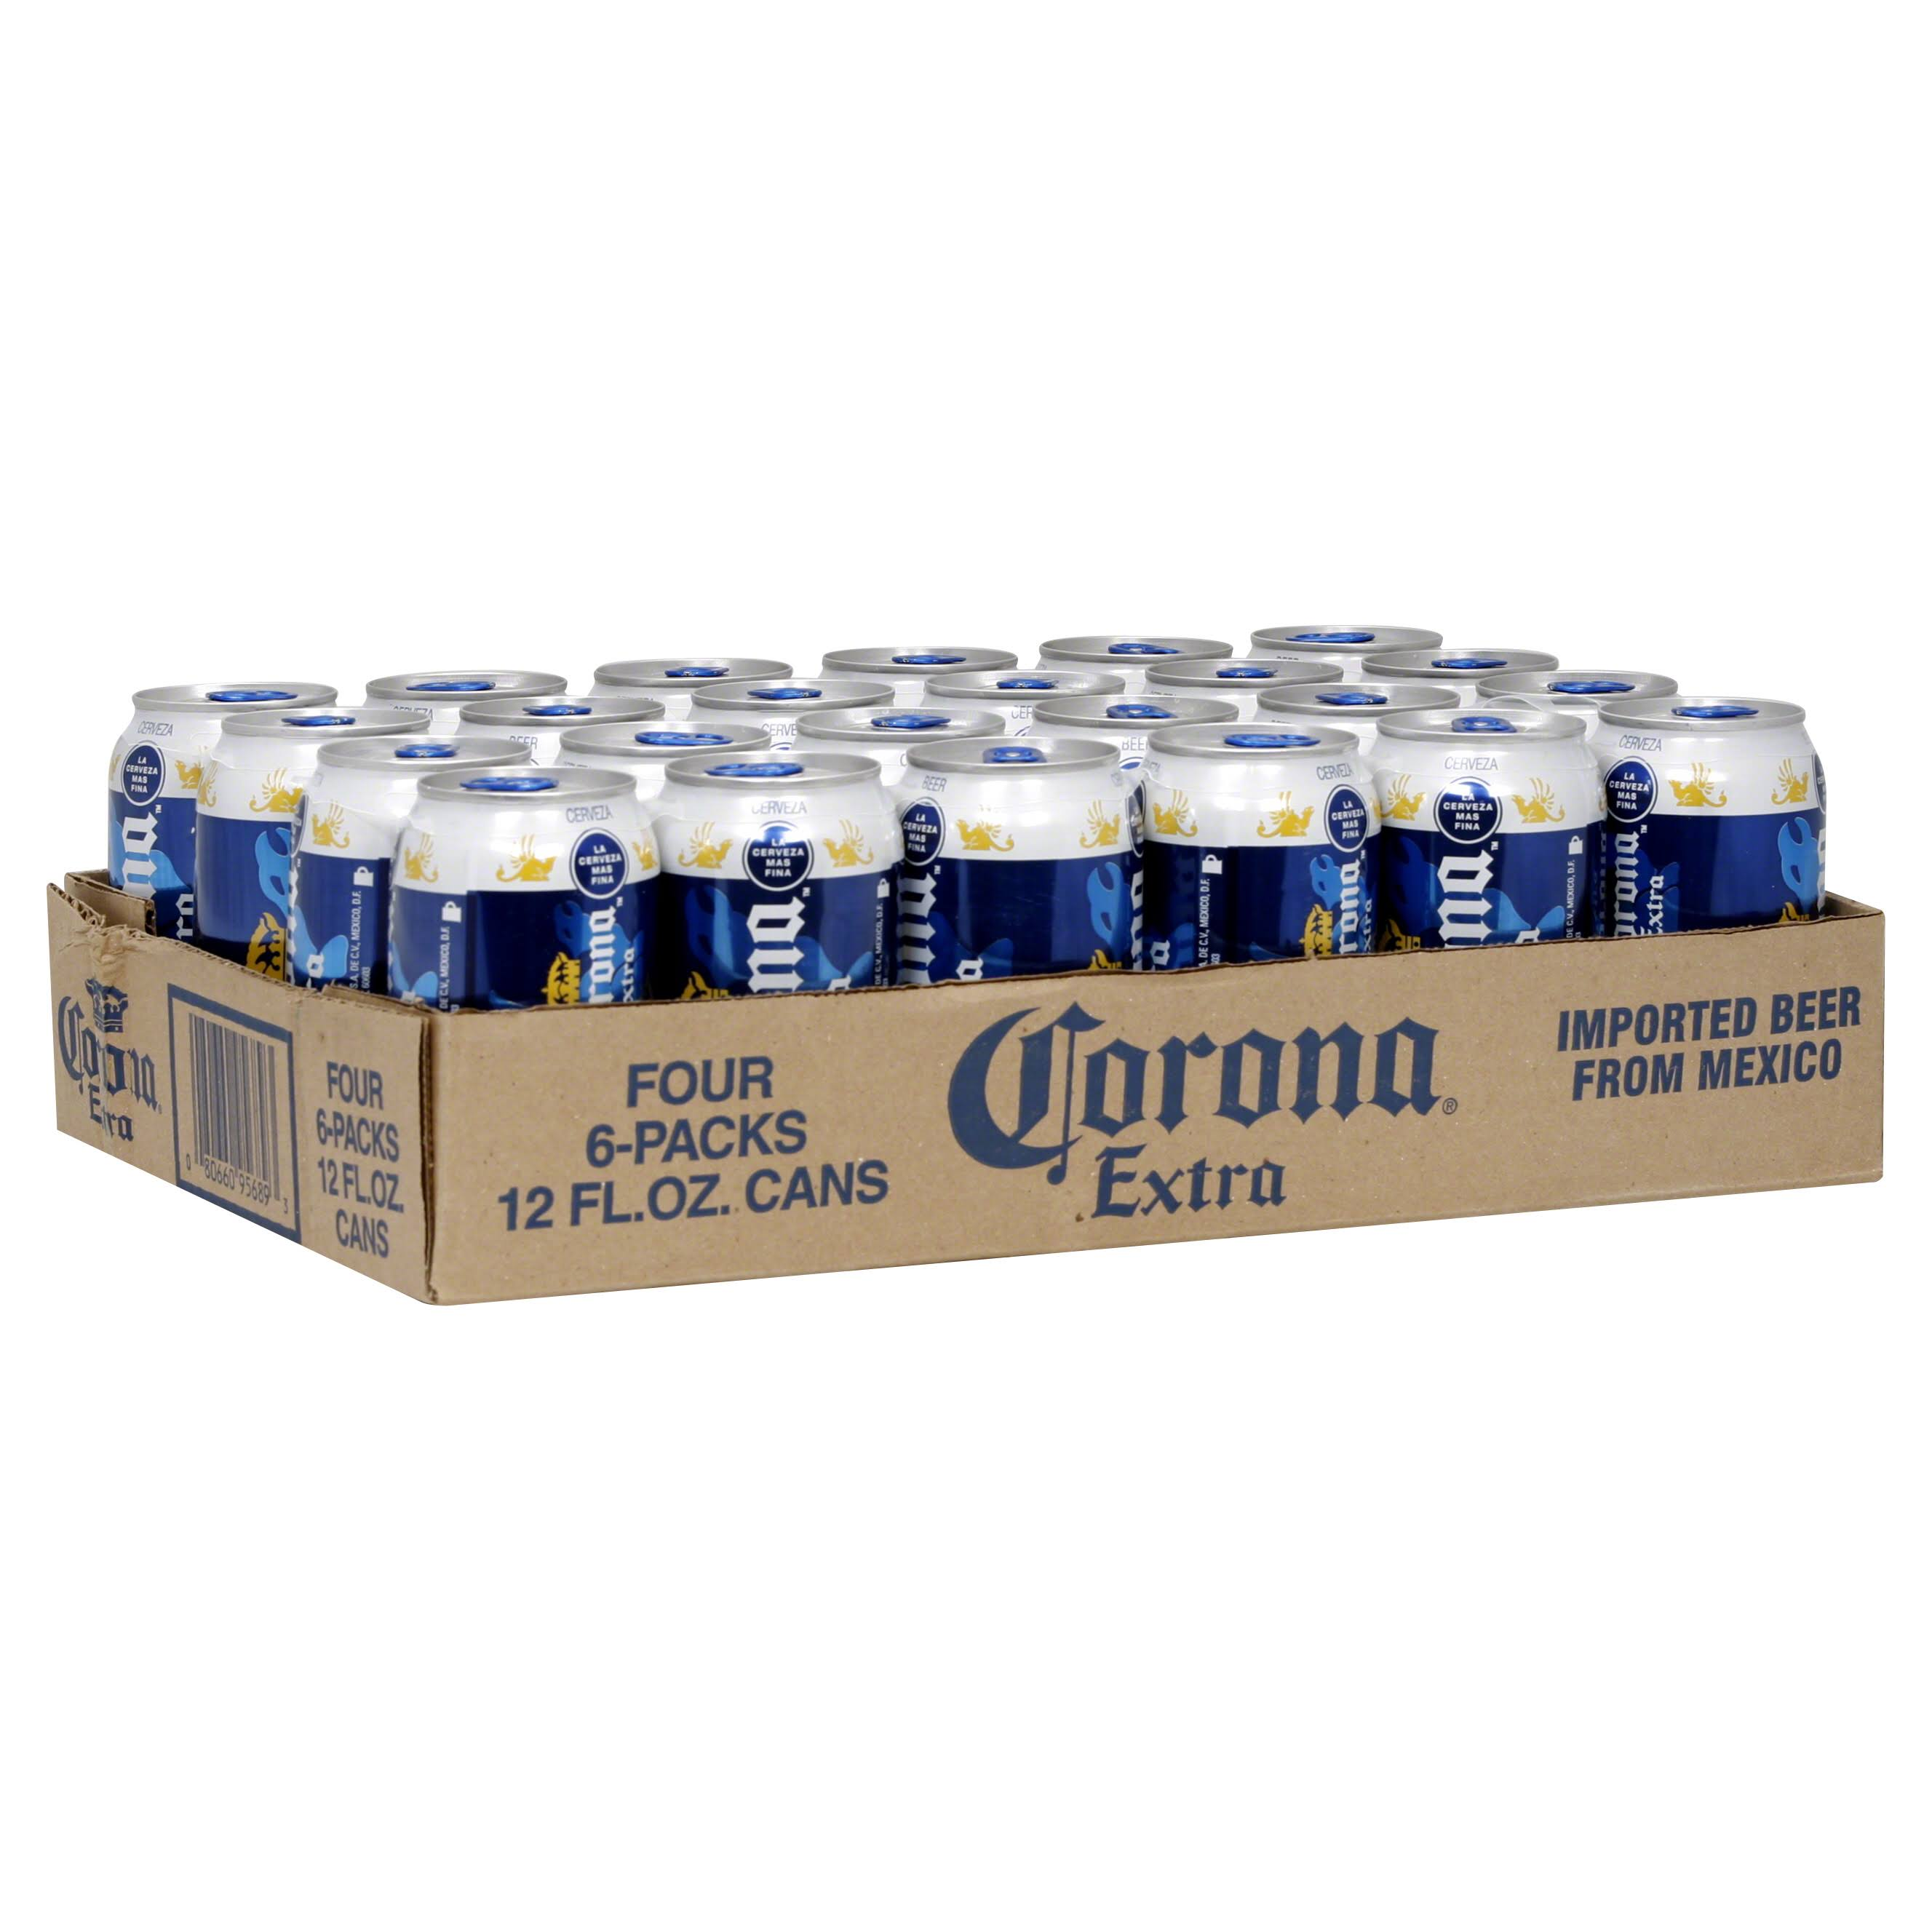 Corona Extra Beer - 4 - 12 fl oz can 6 packs